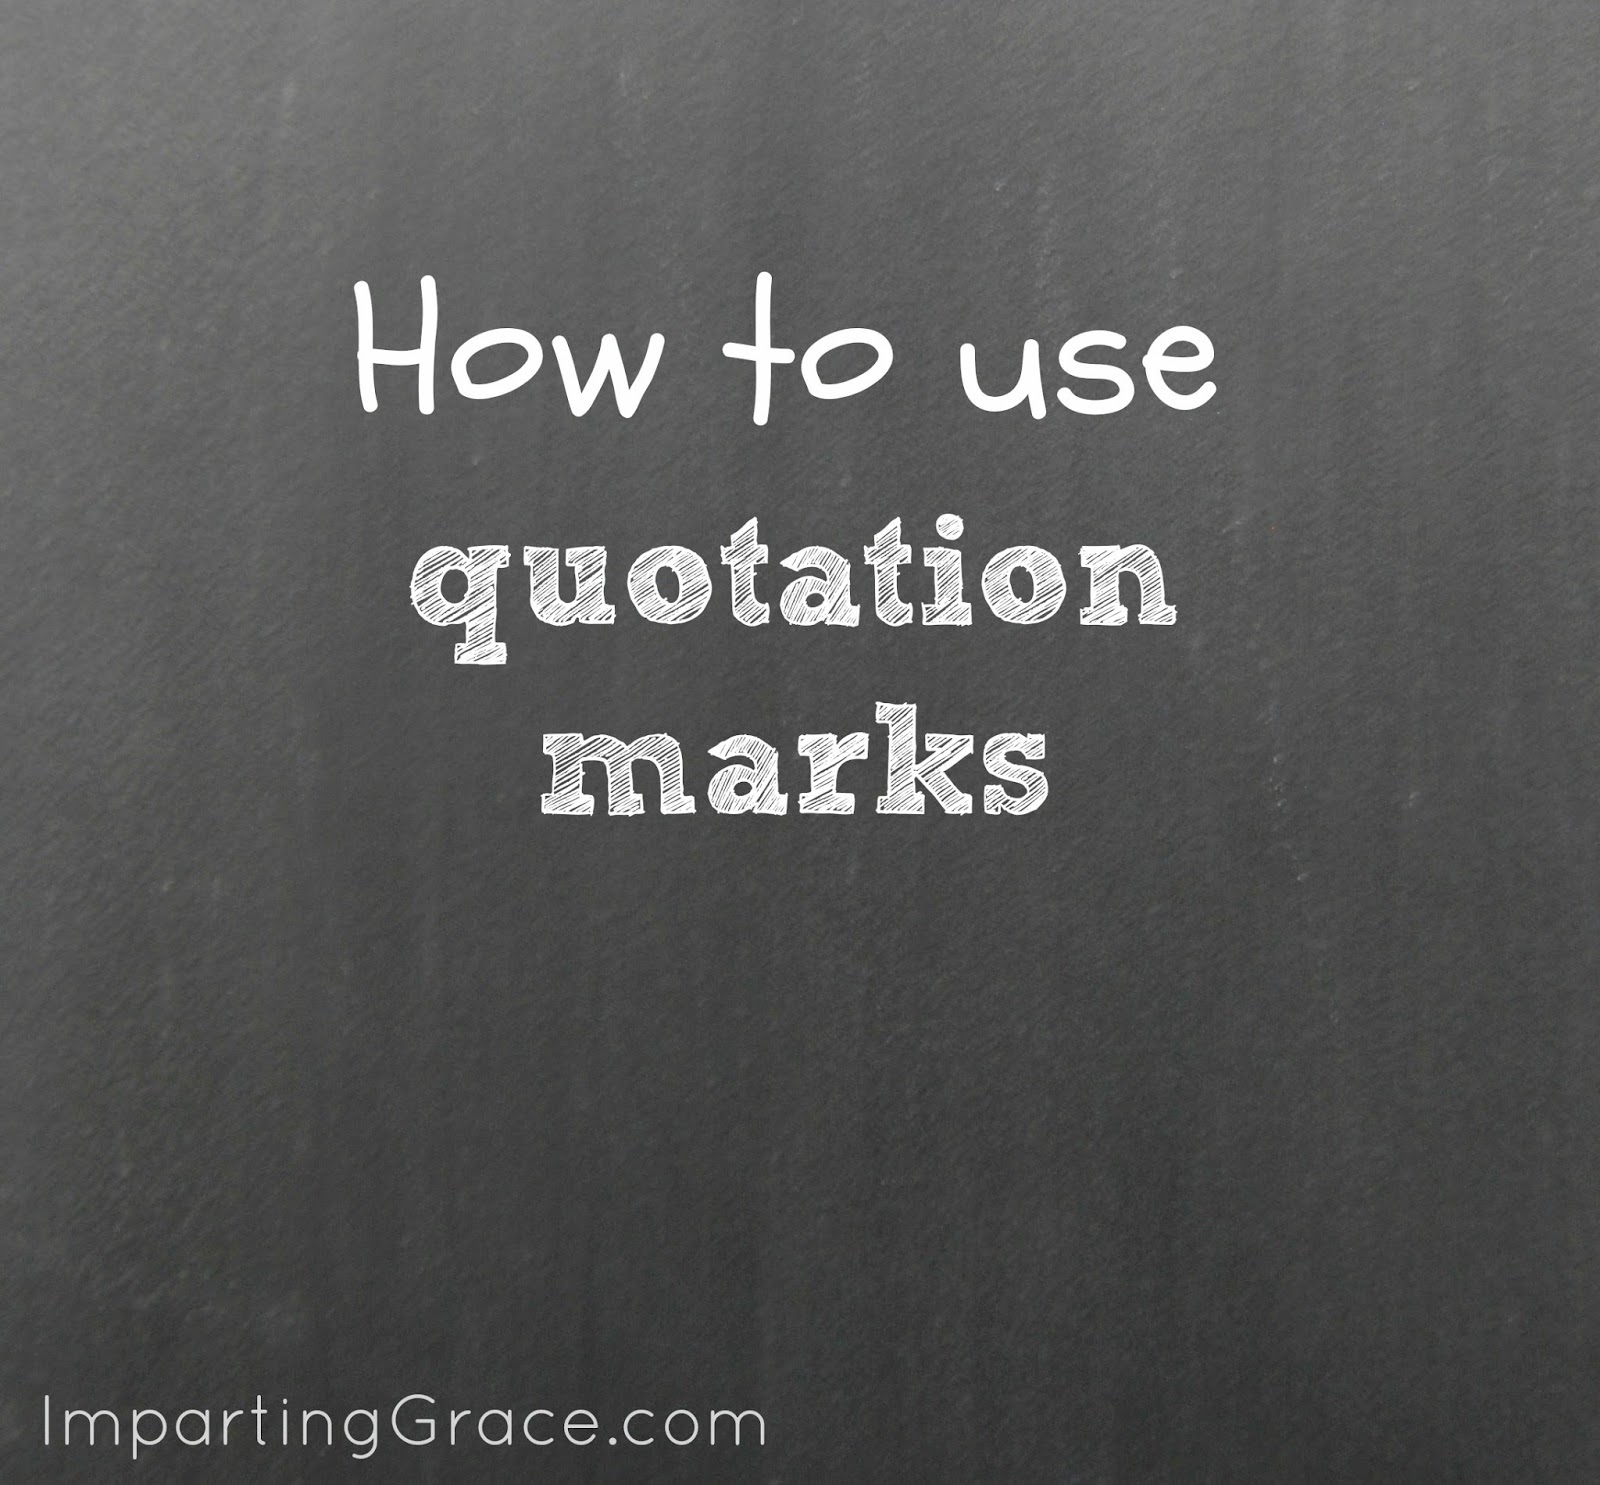 Imparting Grace English Teacher How To Use Quotation Marks